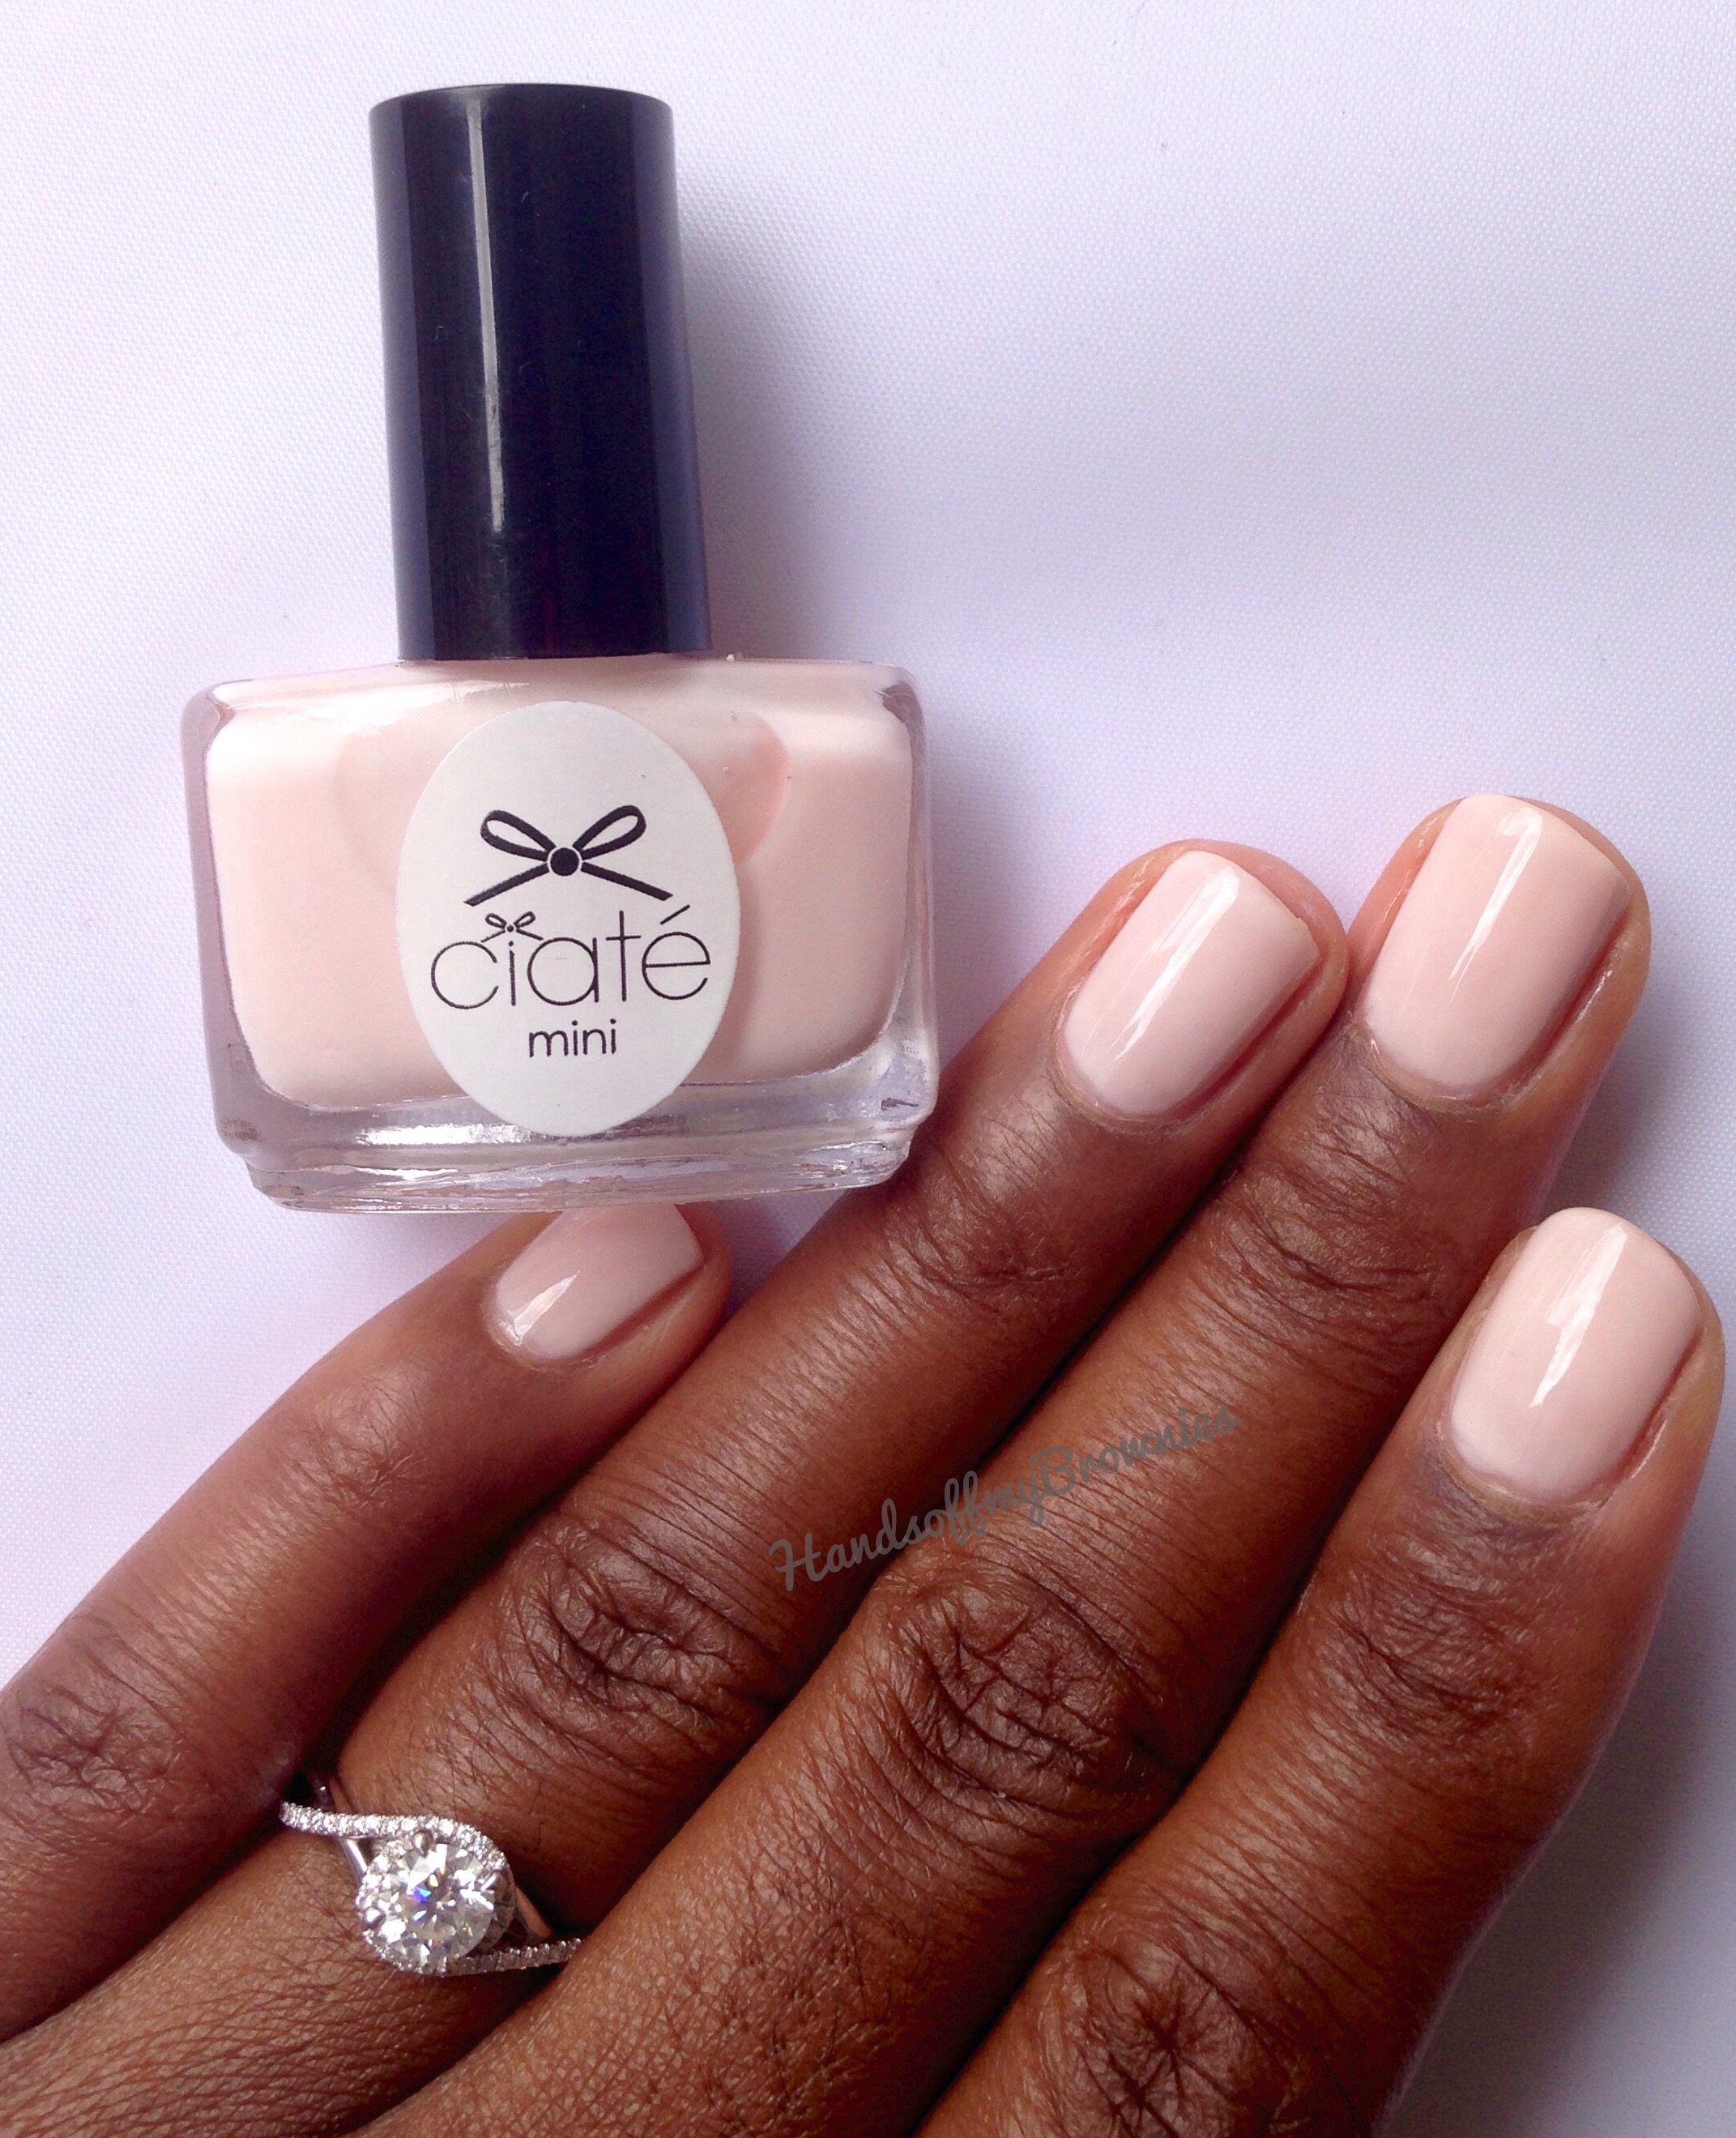 Ciate London Nail Polish: A Girl With Brown Hands And An